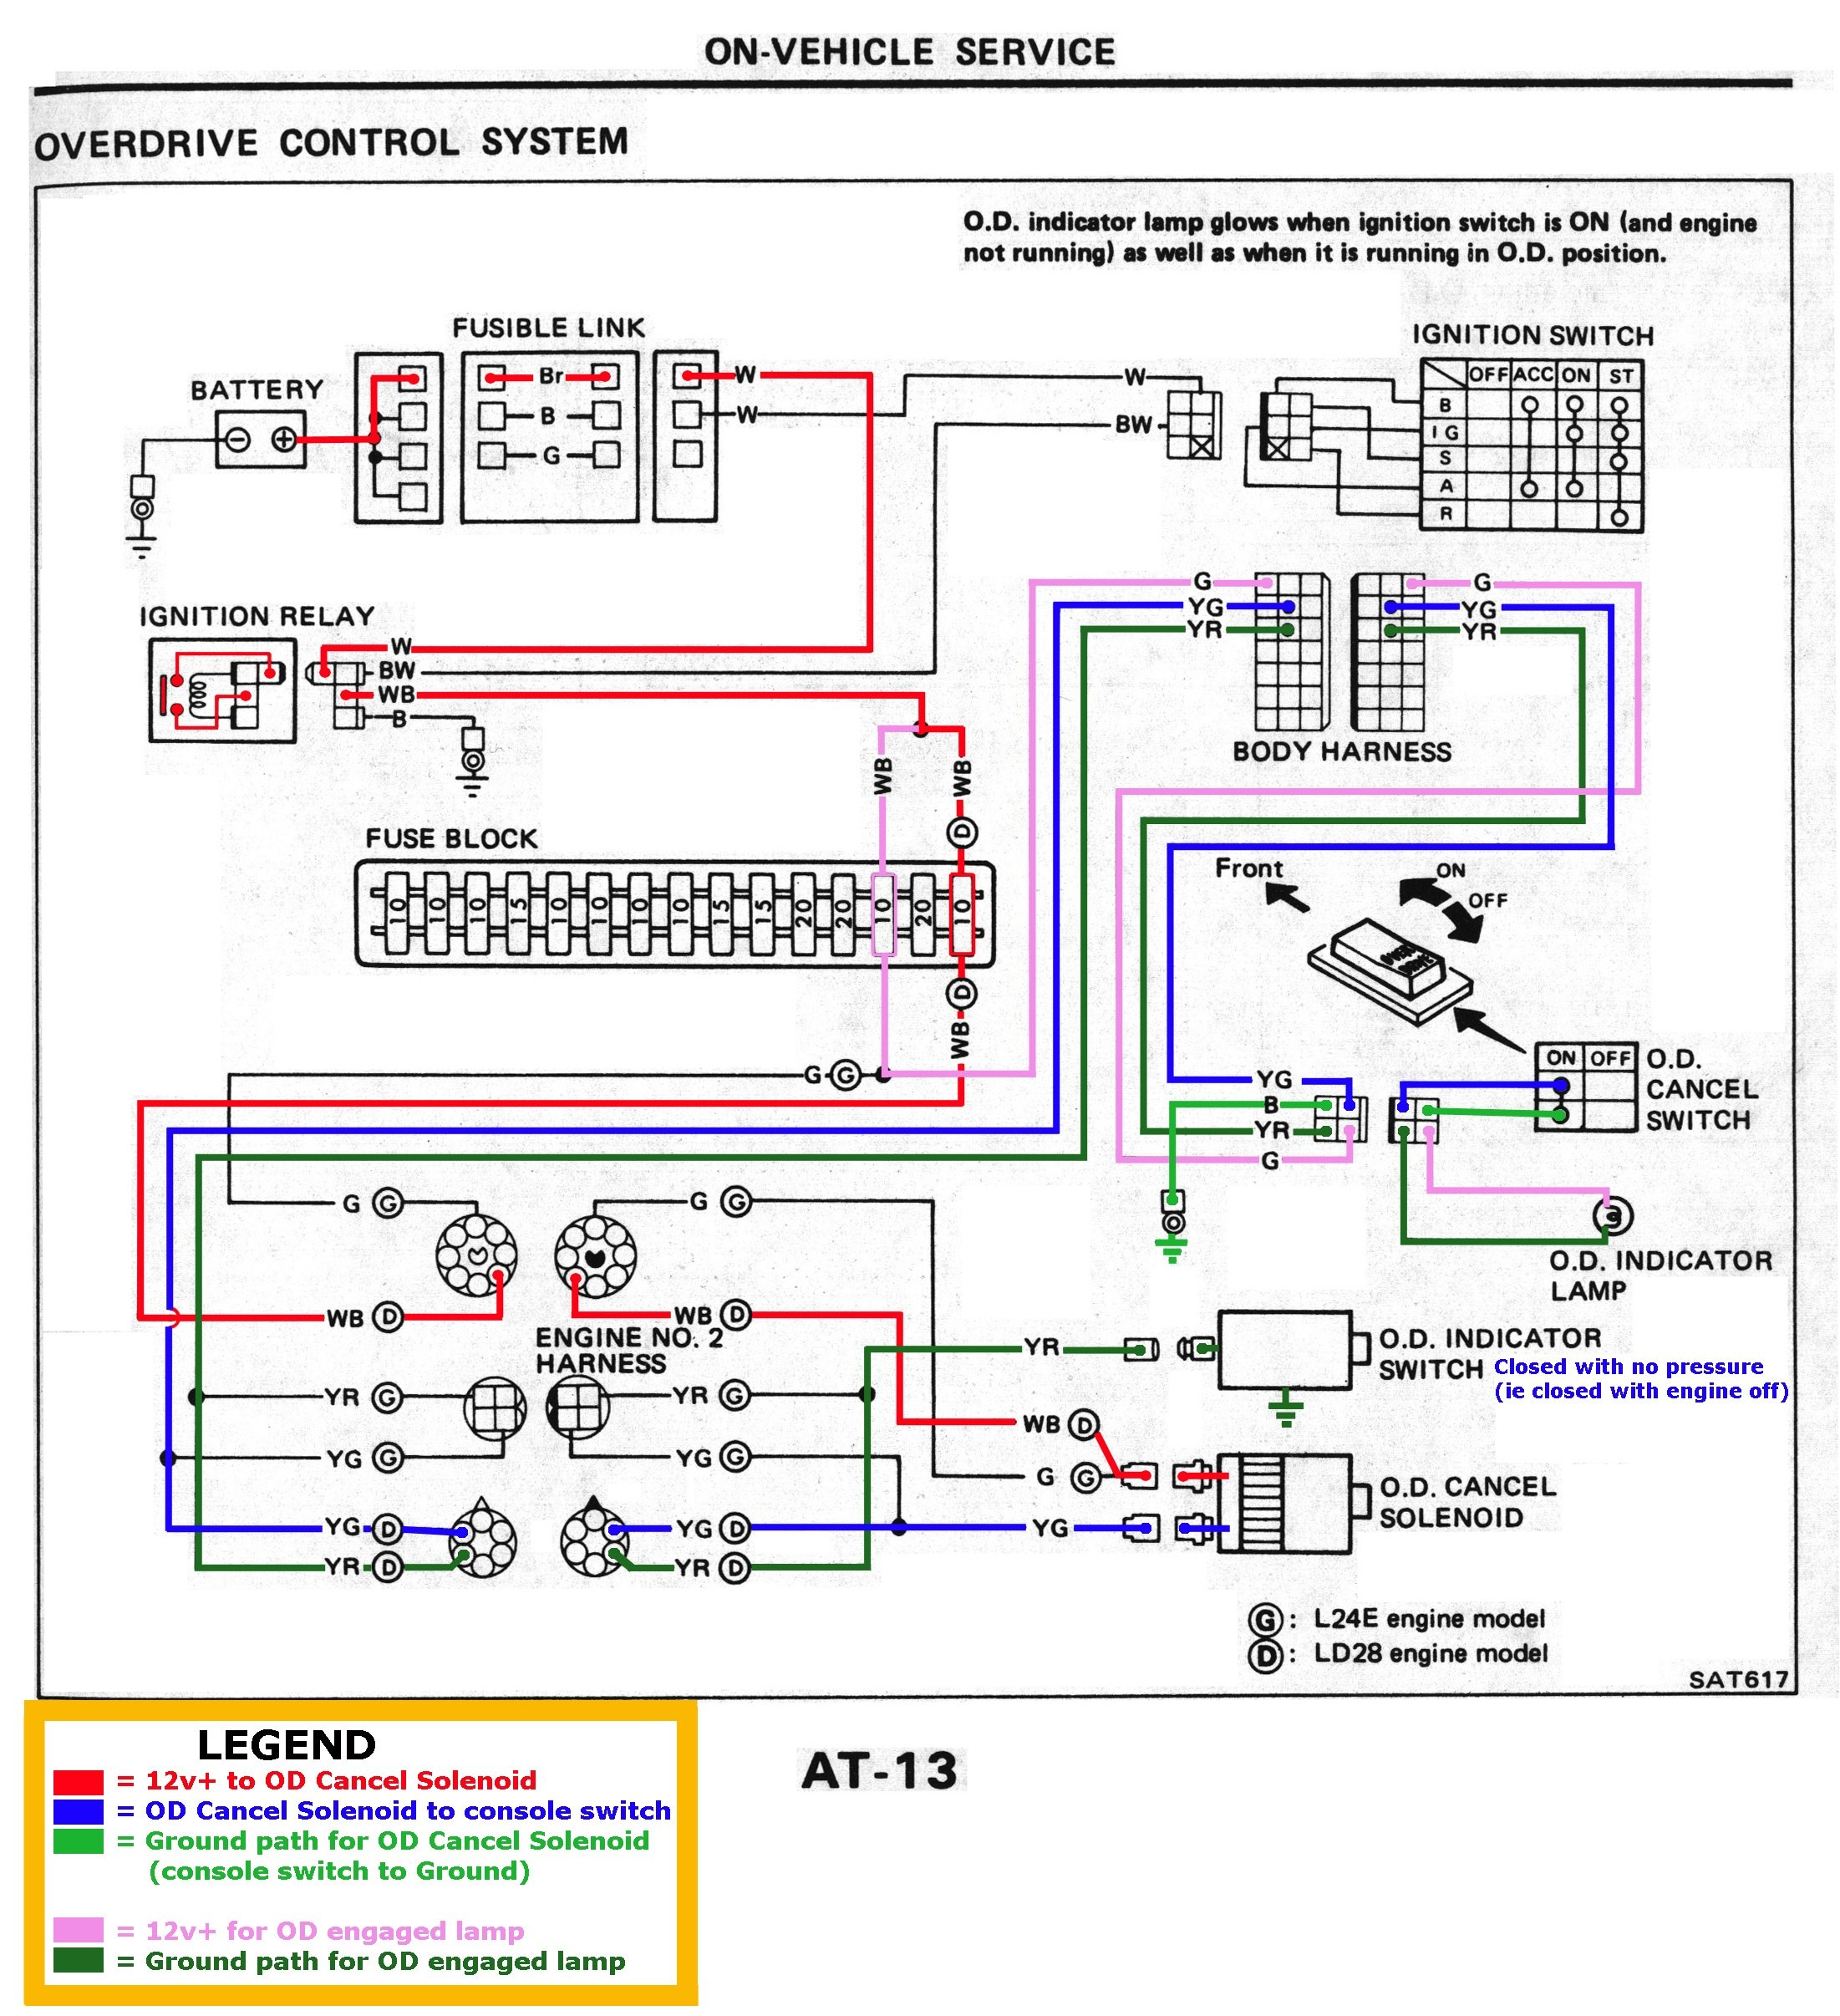 95 Nissan Maxima Engine Diagram Also Ignition Switch Wiring Diagram Nissan  240z Engine Diagram Of 95